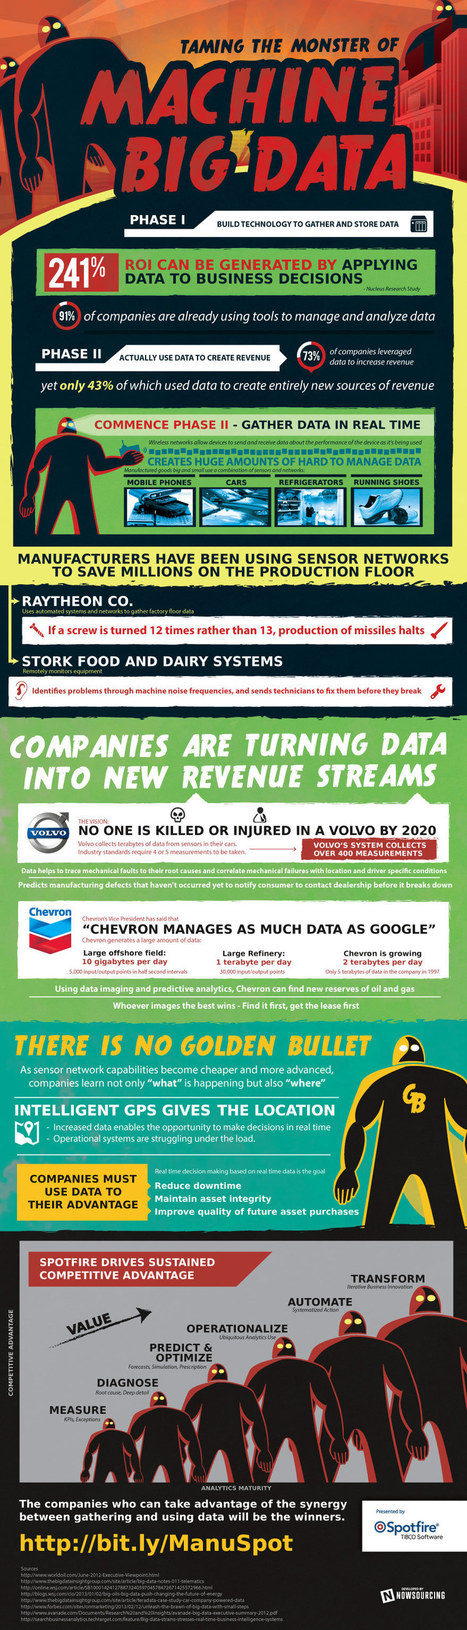 Taming the Big Data Monster [Infographic] - | Beyond Marketing | Scoop.it